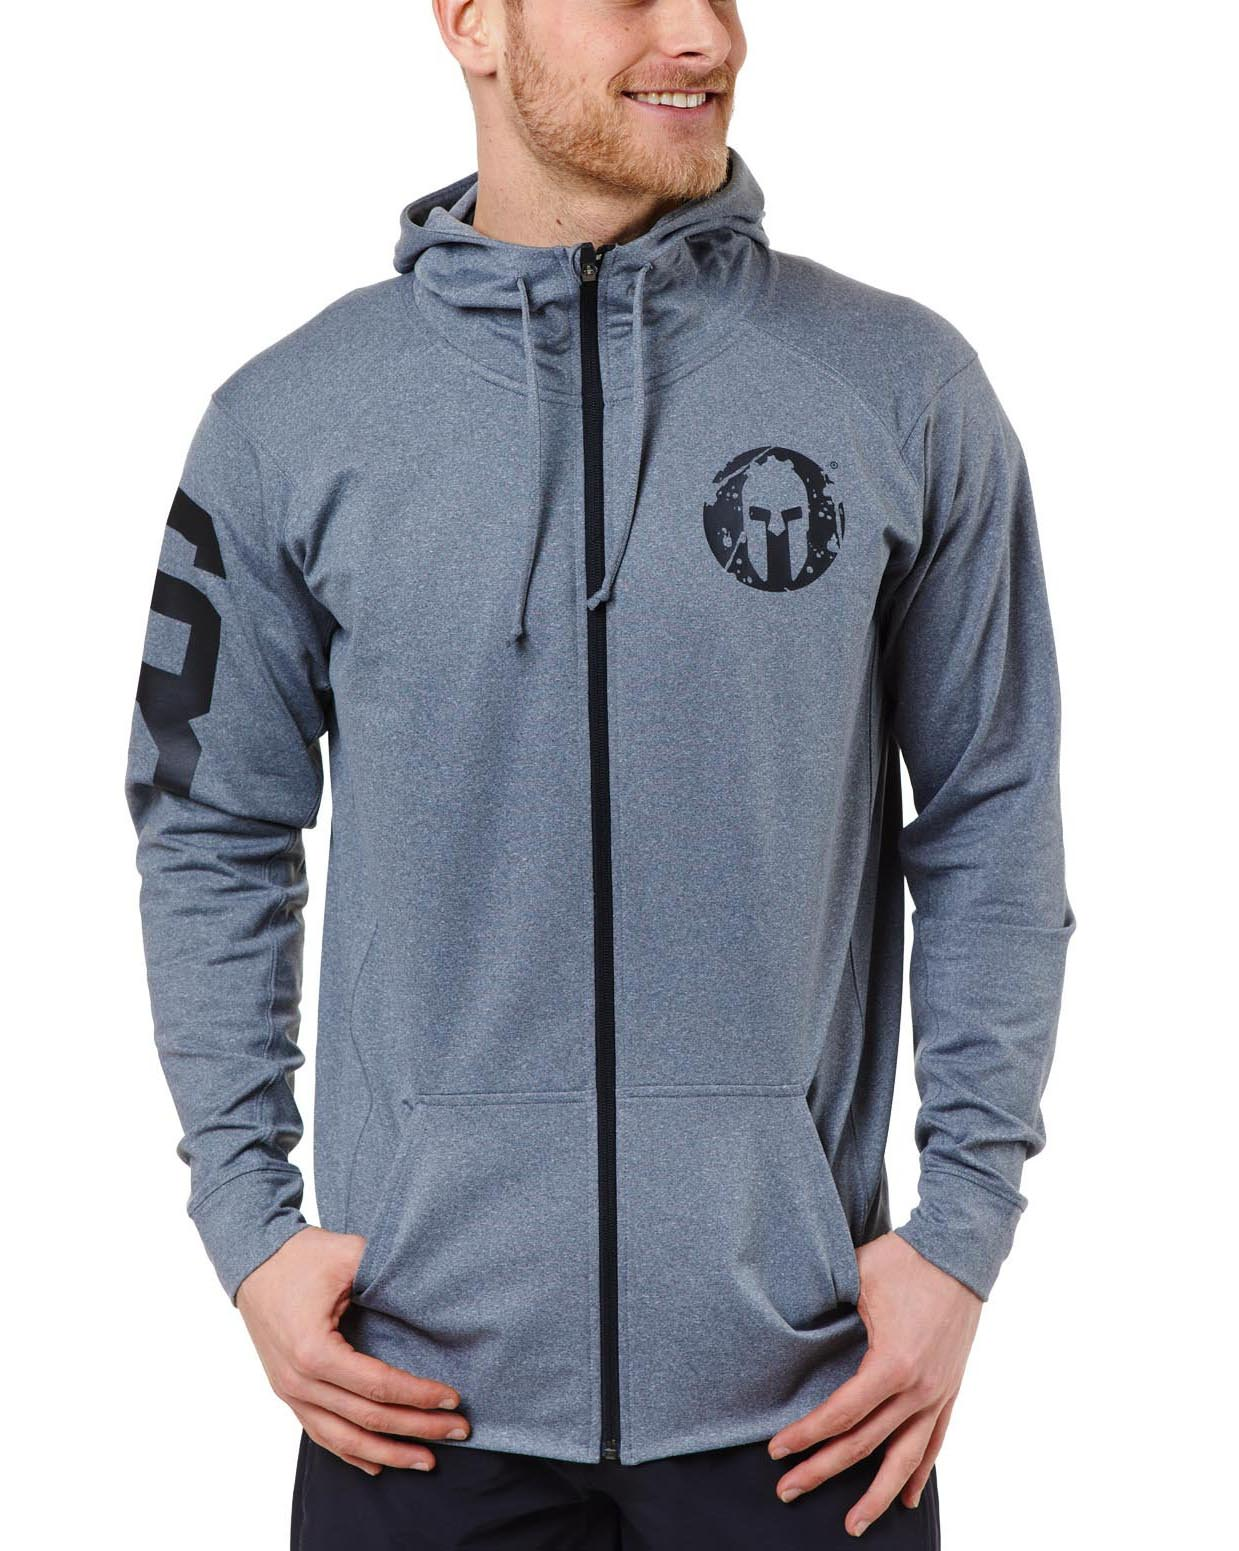 SPARTAN Performance Fleece Full Zip Hoodie - Men's